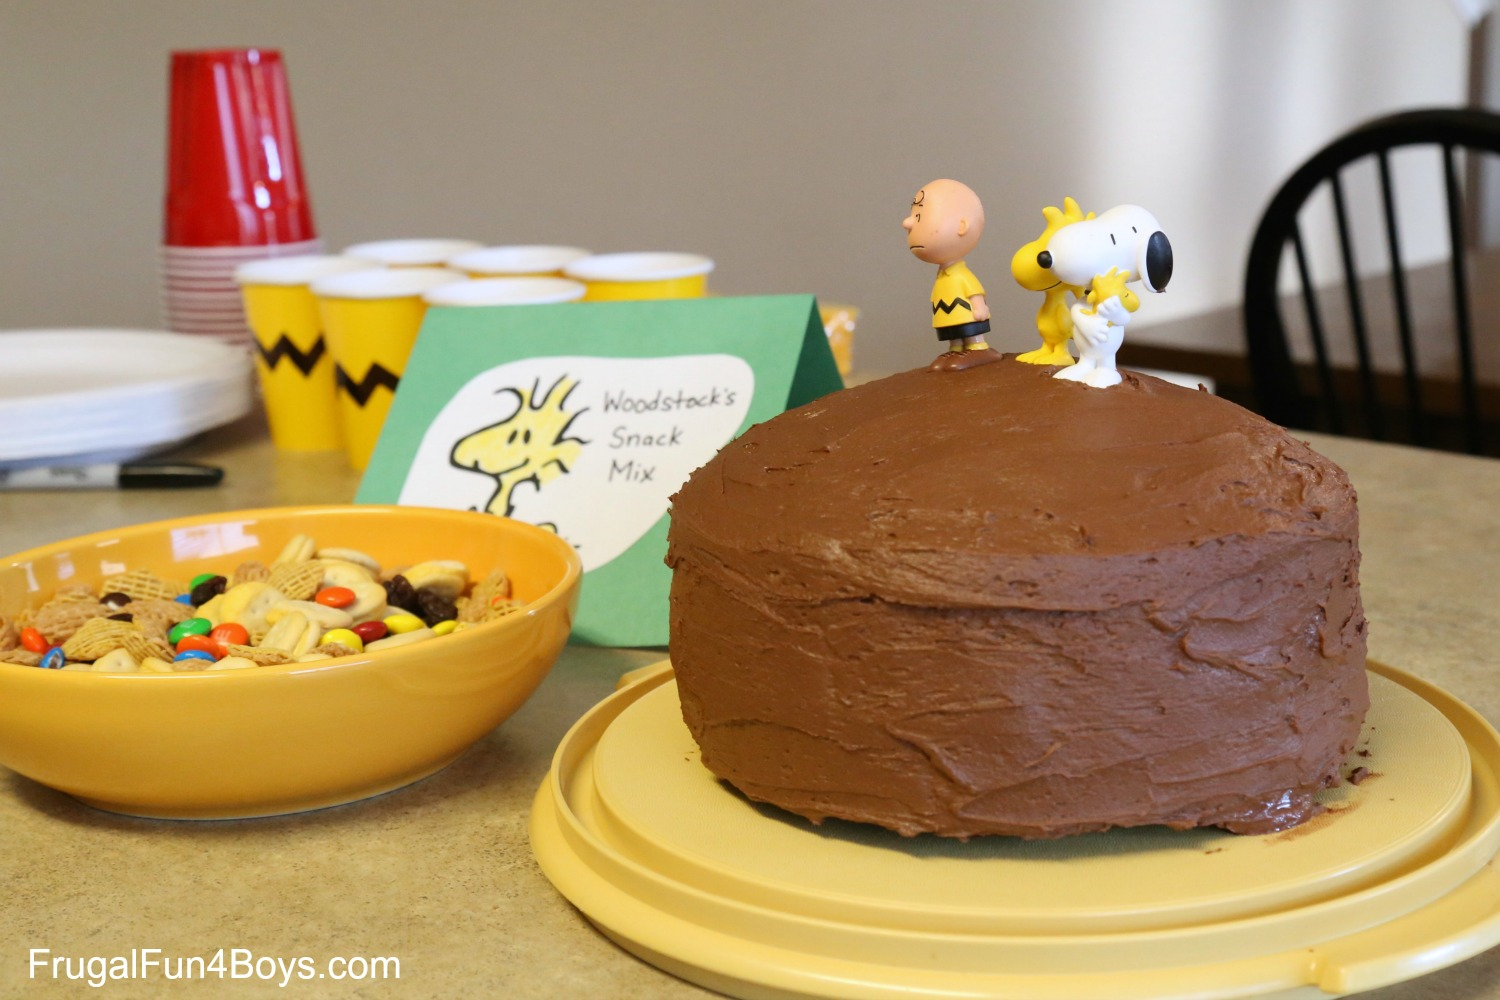 Fabulous Fun Food Ideas For A Peanuts Birthday Party Frugal Fun For Boys Personalised Birthday Cards Paralily Jamesorg